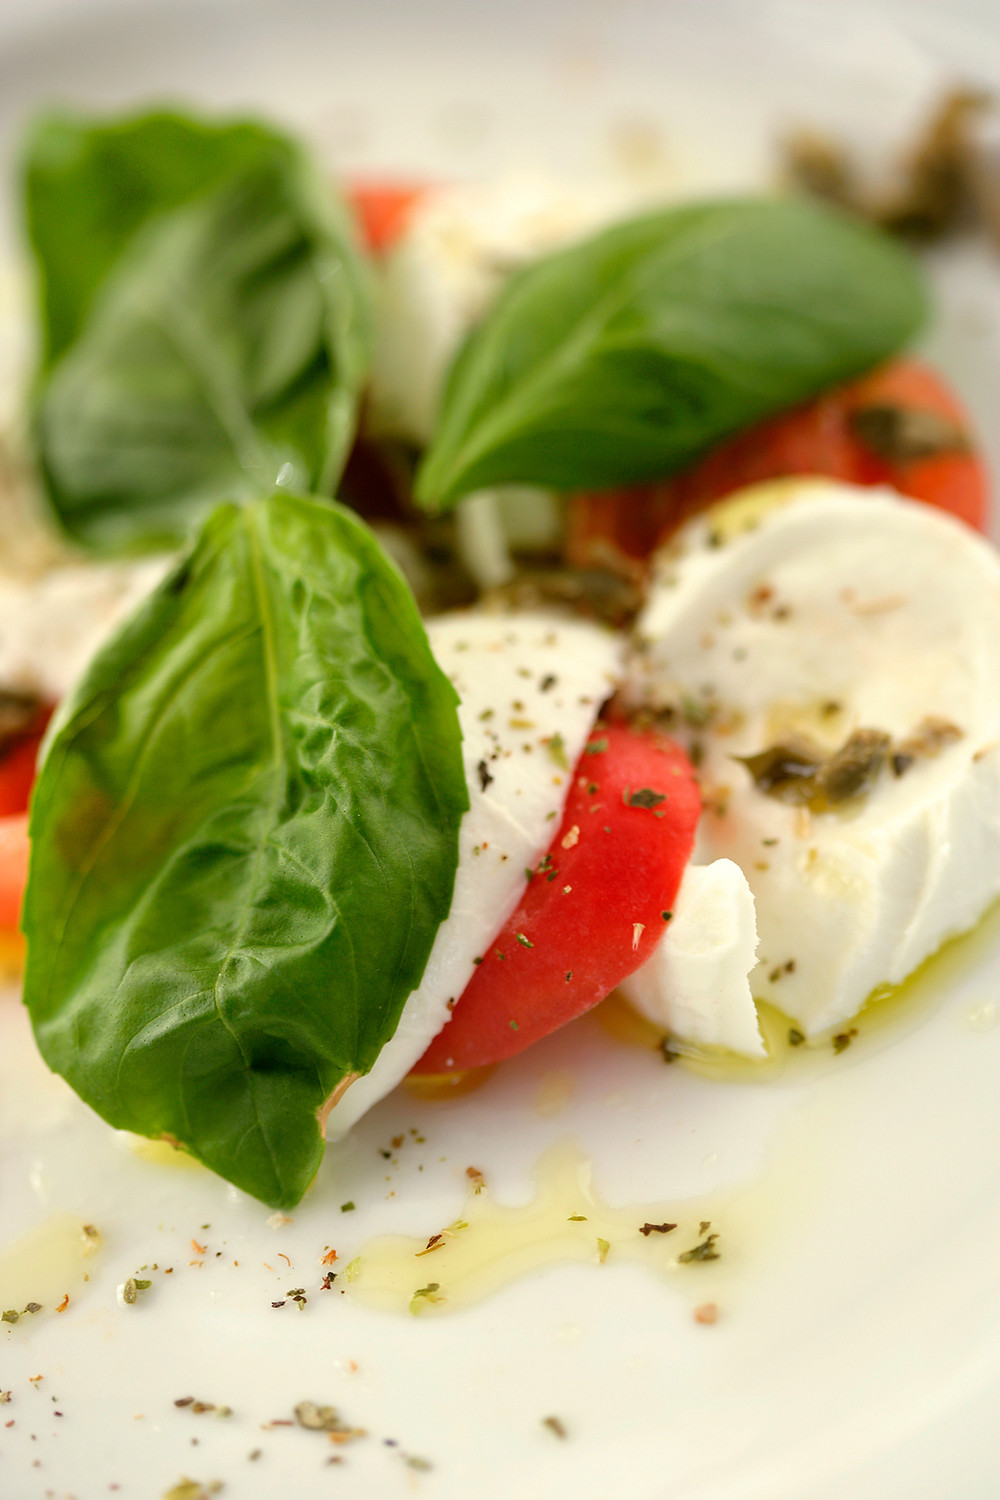 Caprese salad | Salt & Light Natural Wellness